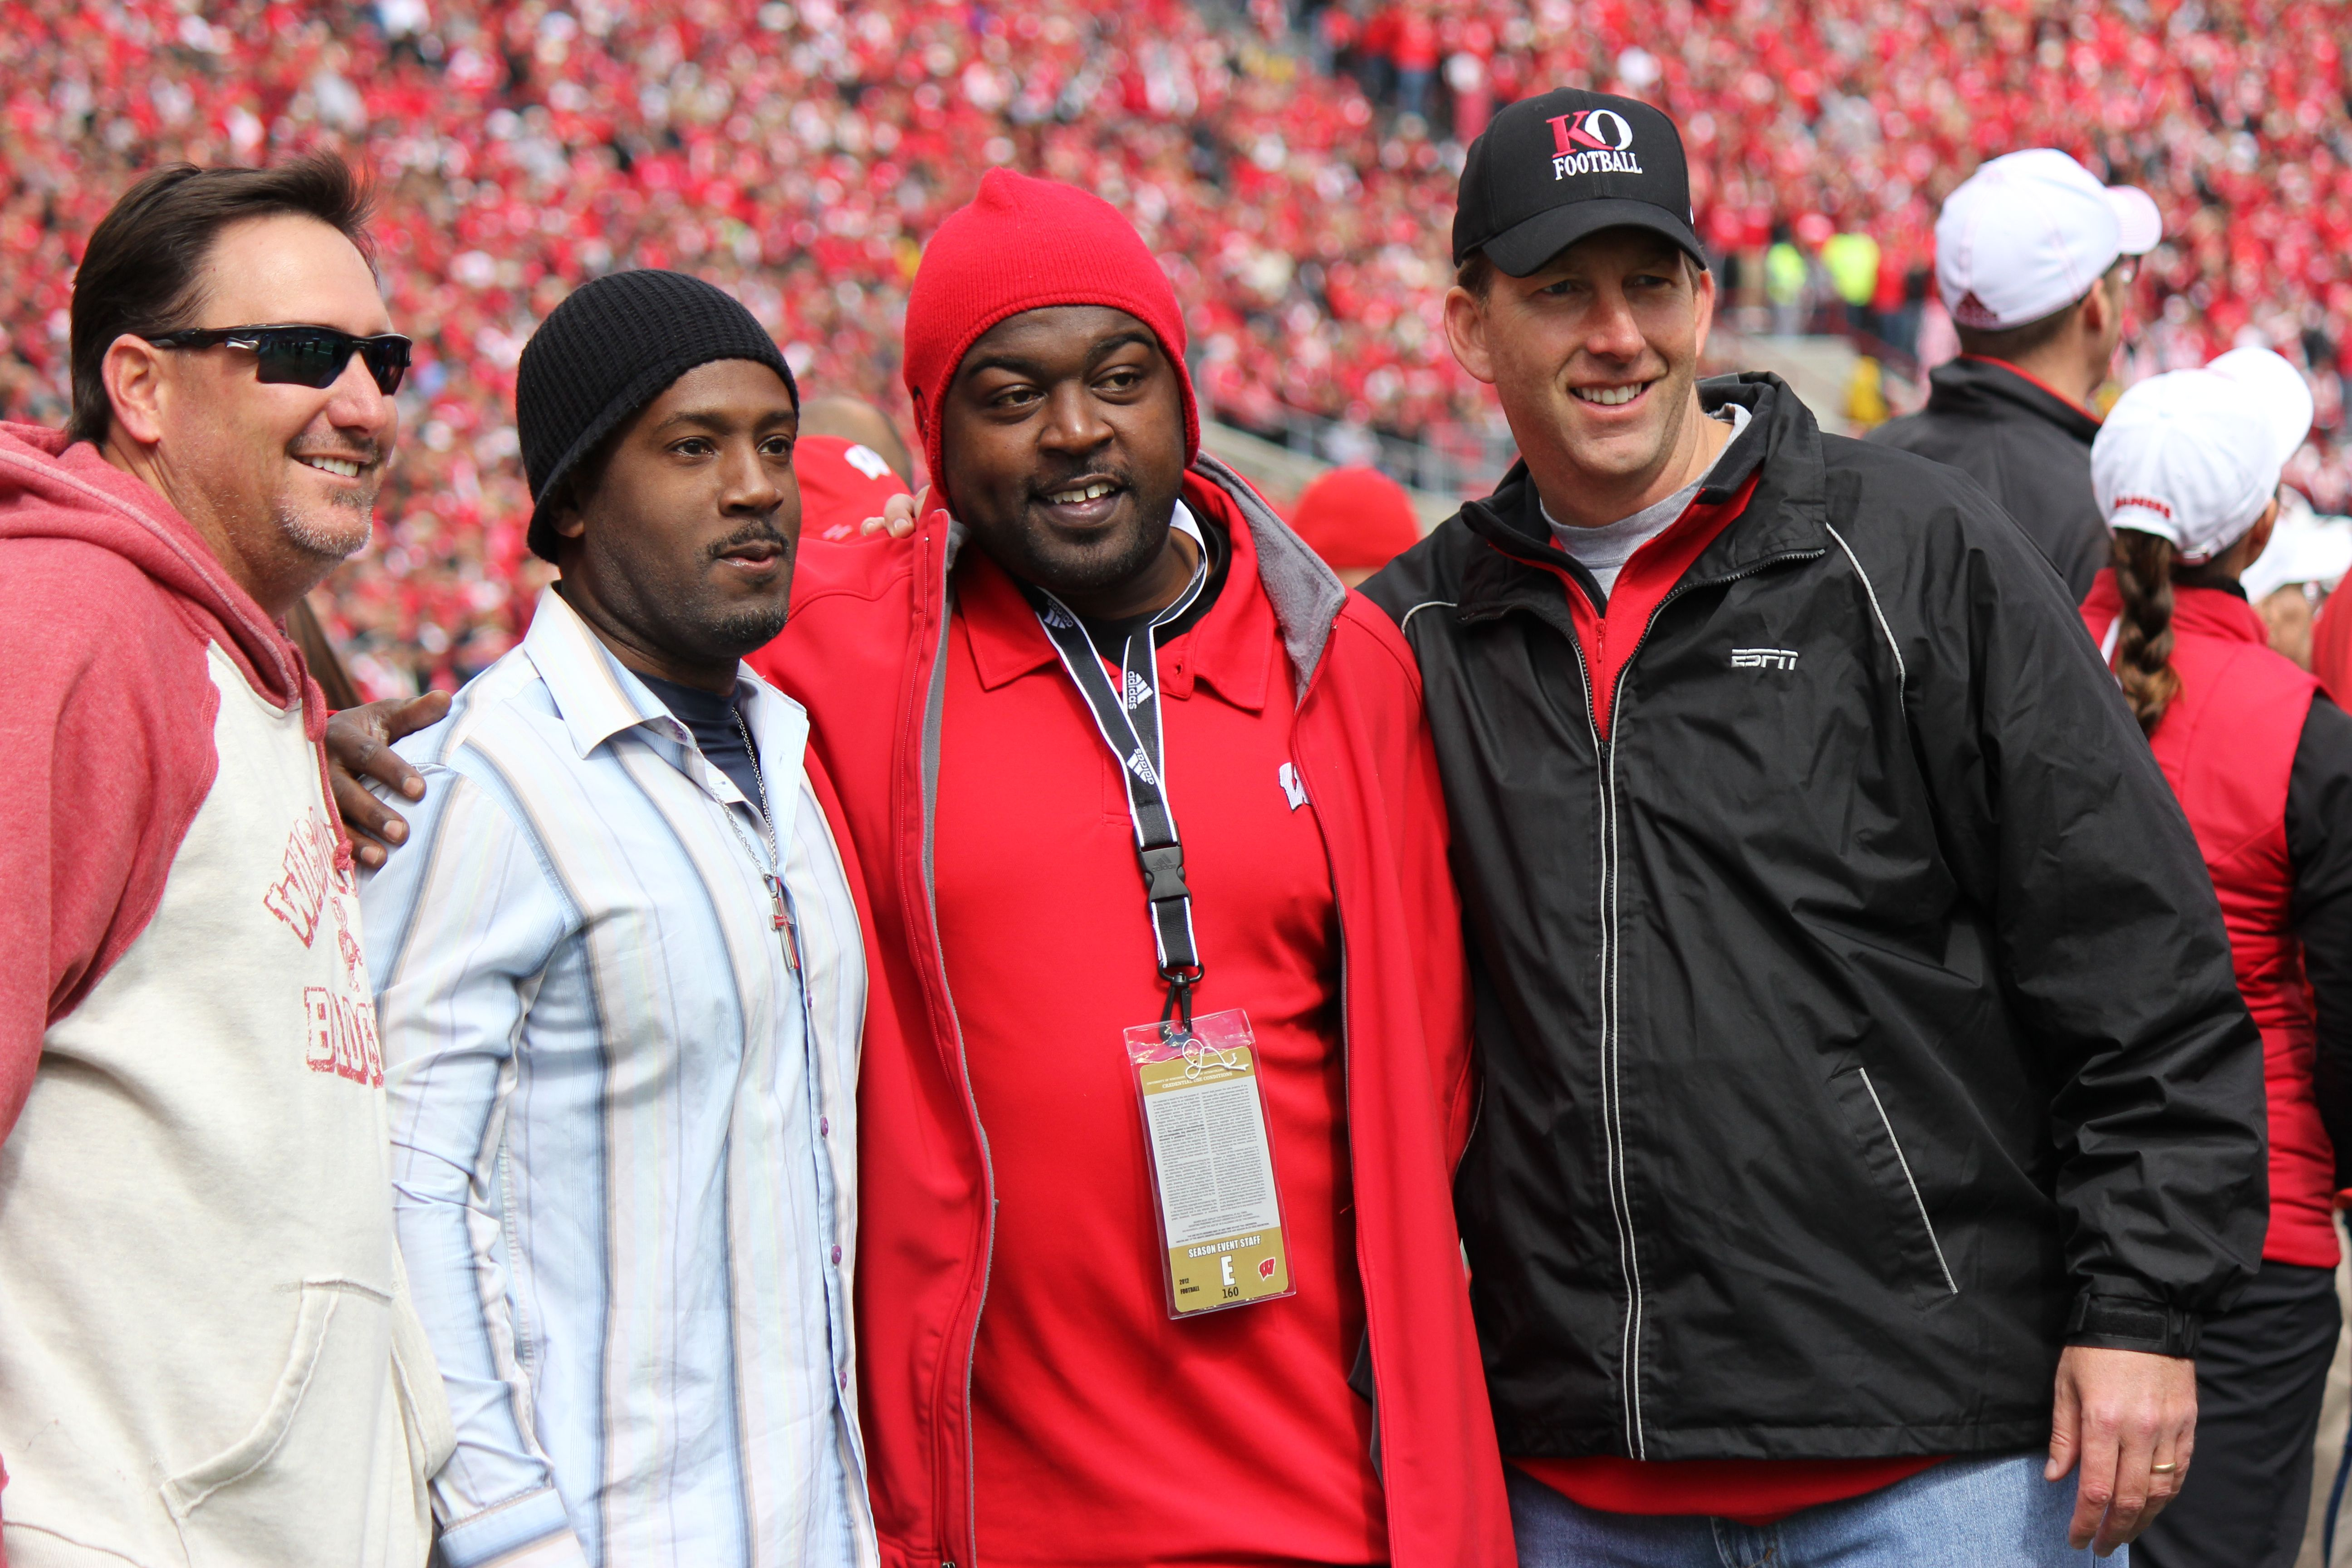 Heisman Trophy winner Ron Dayne takes photos with fans.